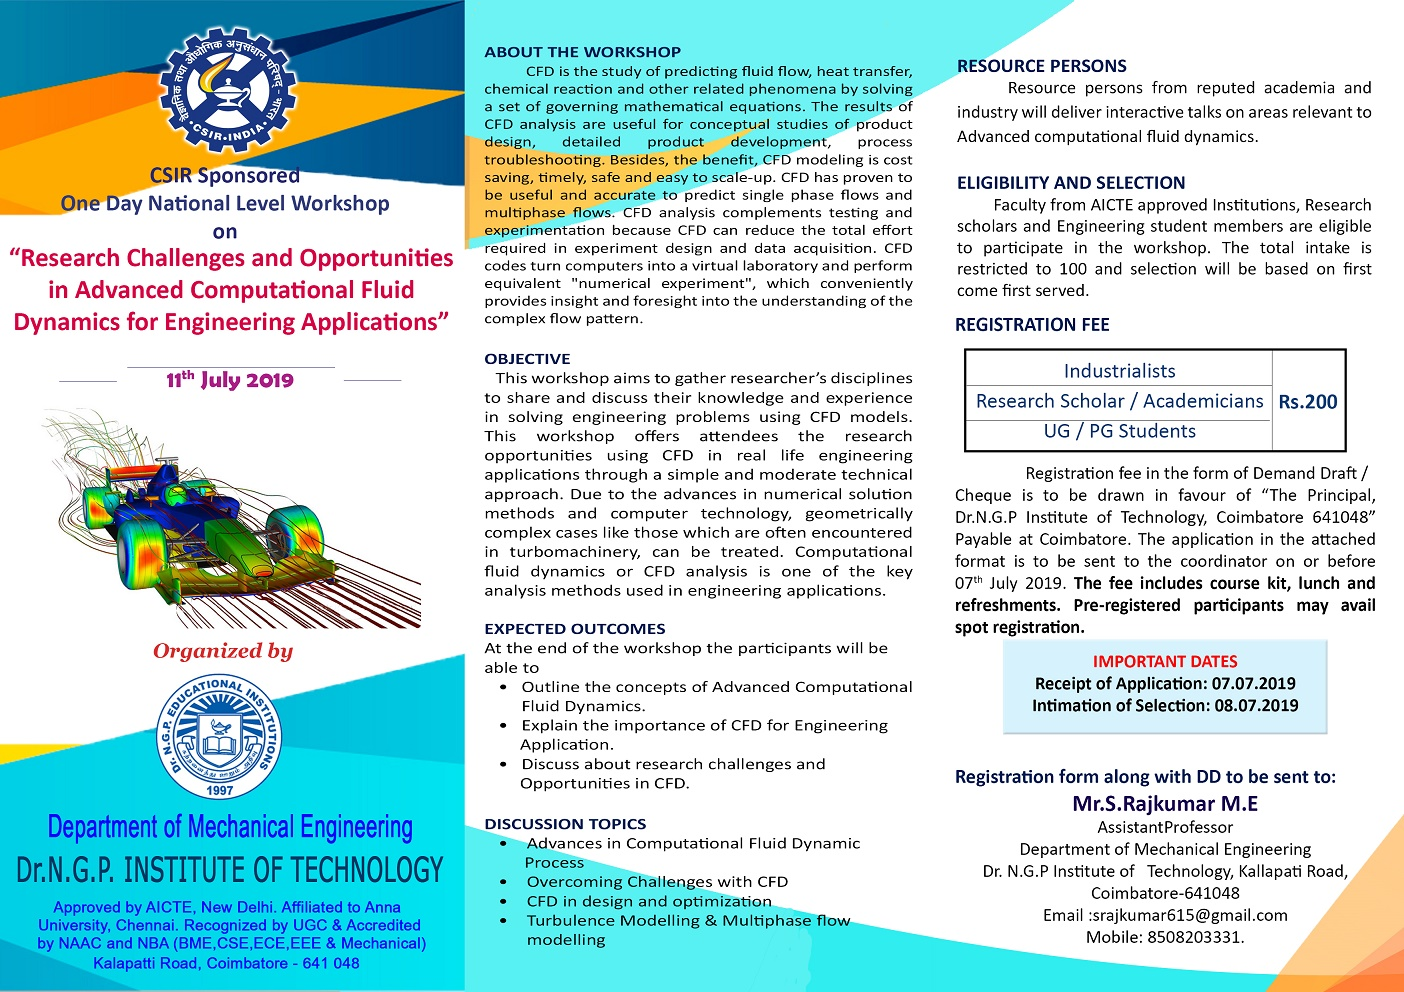 One Day National Level Workshop on Research Challenges and